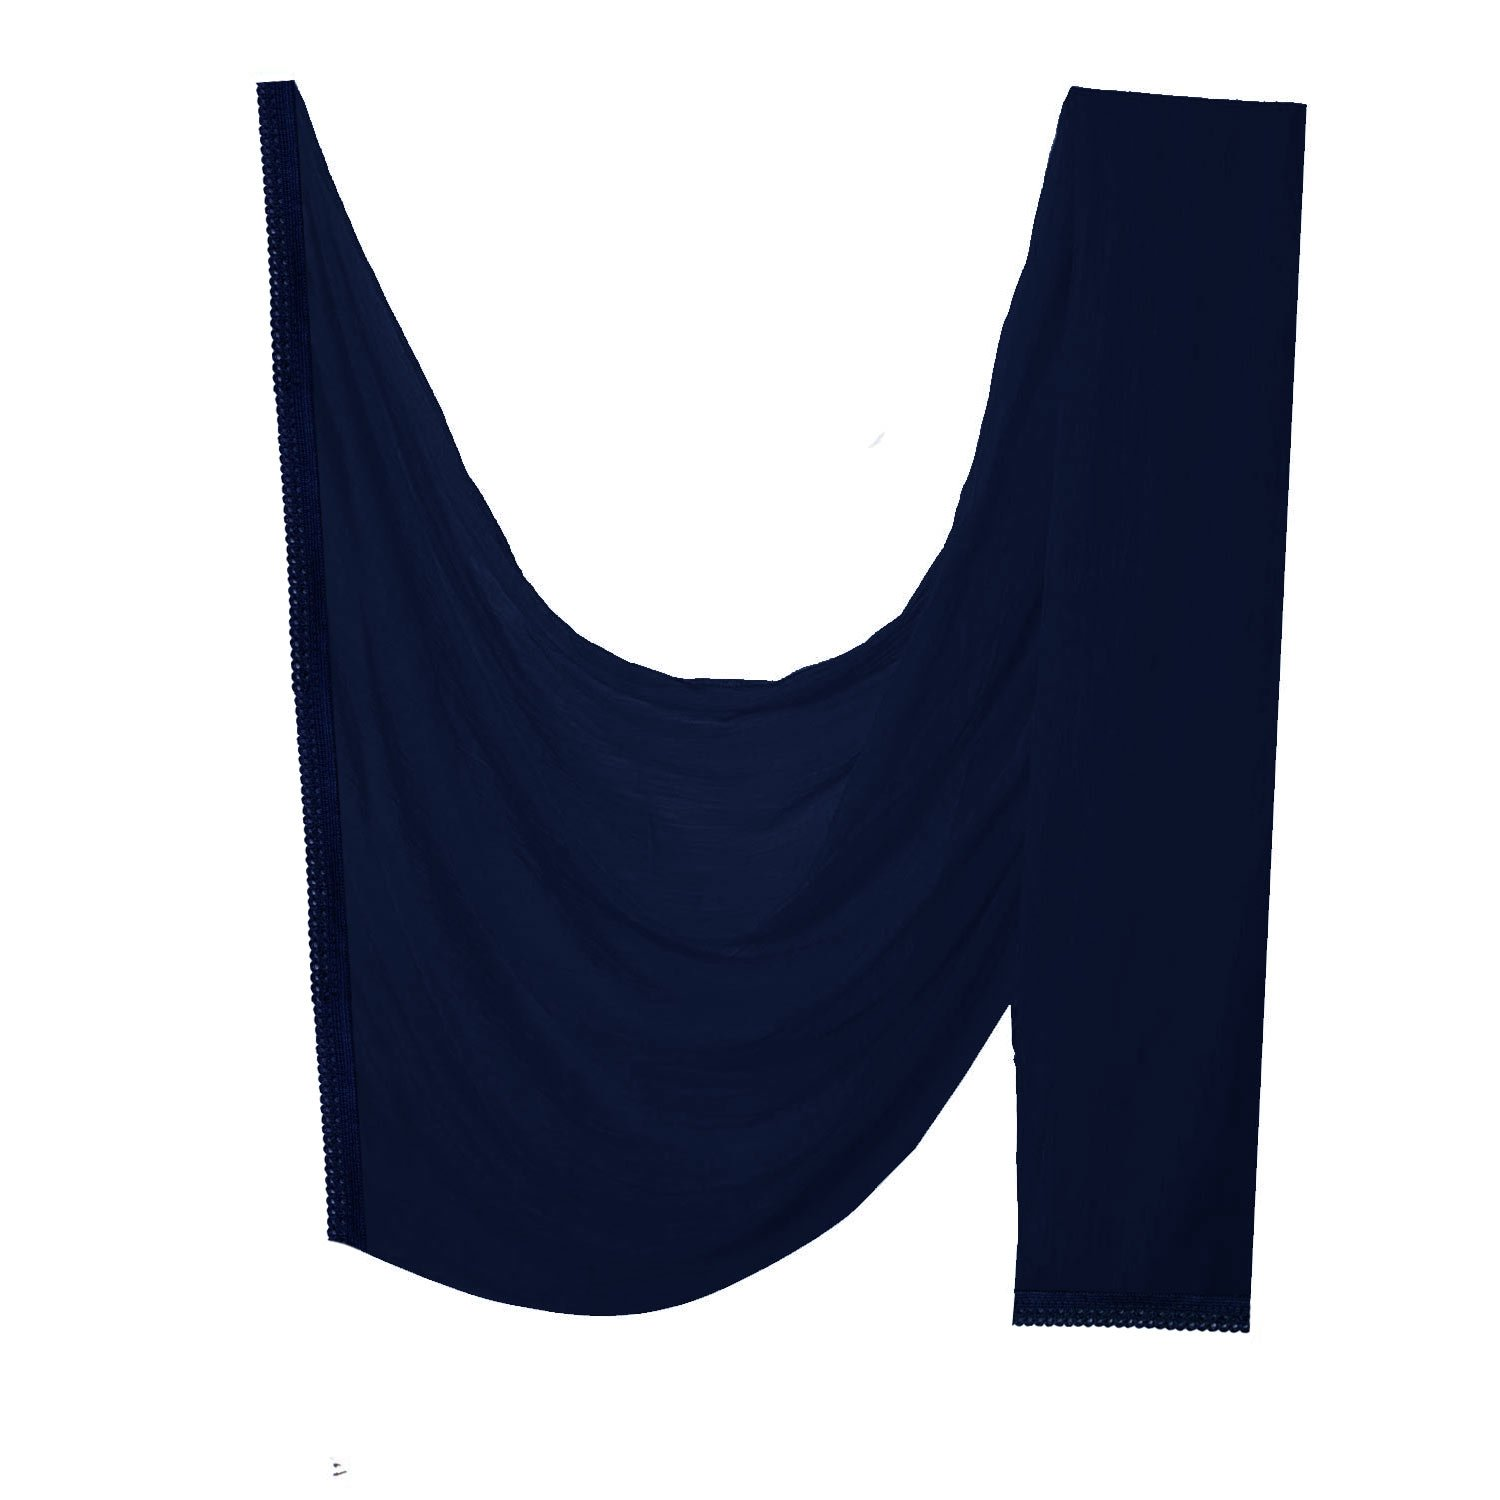 Indian Women Dupatta Crochet Lace Border Hijab Neck Wrap Scarf Stole Traditional Gift (Navy Blue)